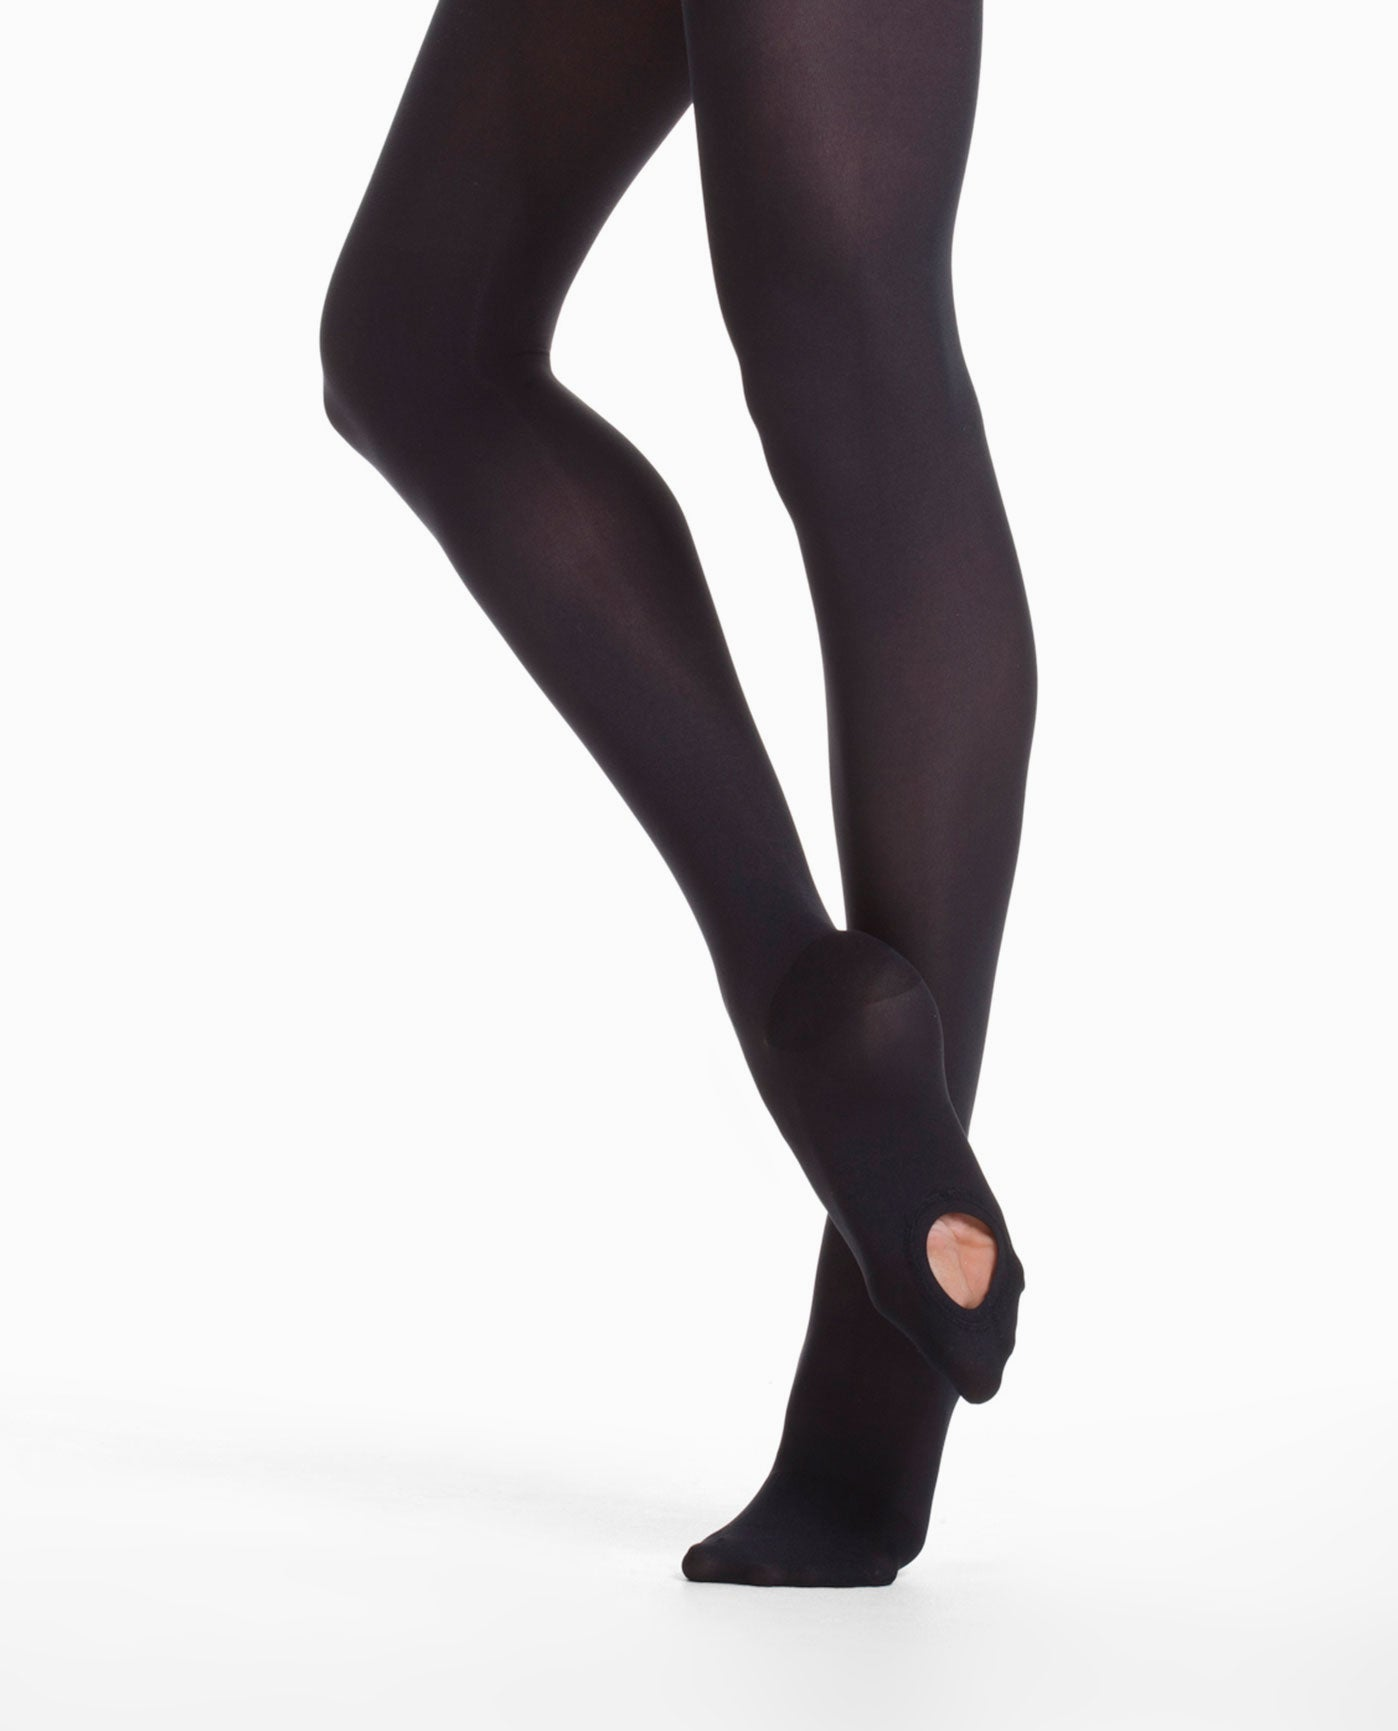 bef3be51a61d9 Women's 702 Convertible Microfiber Tight | Womens Tights | Danskin